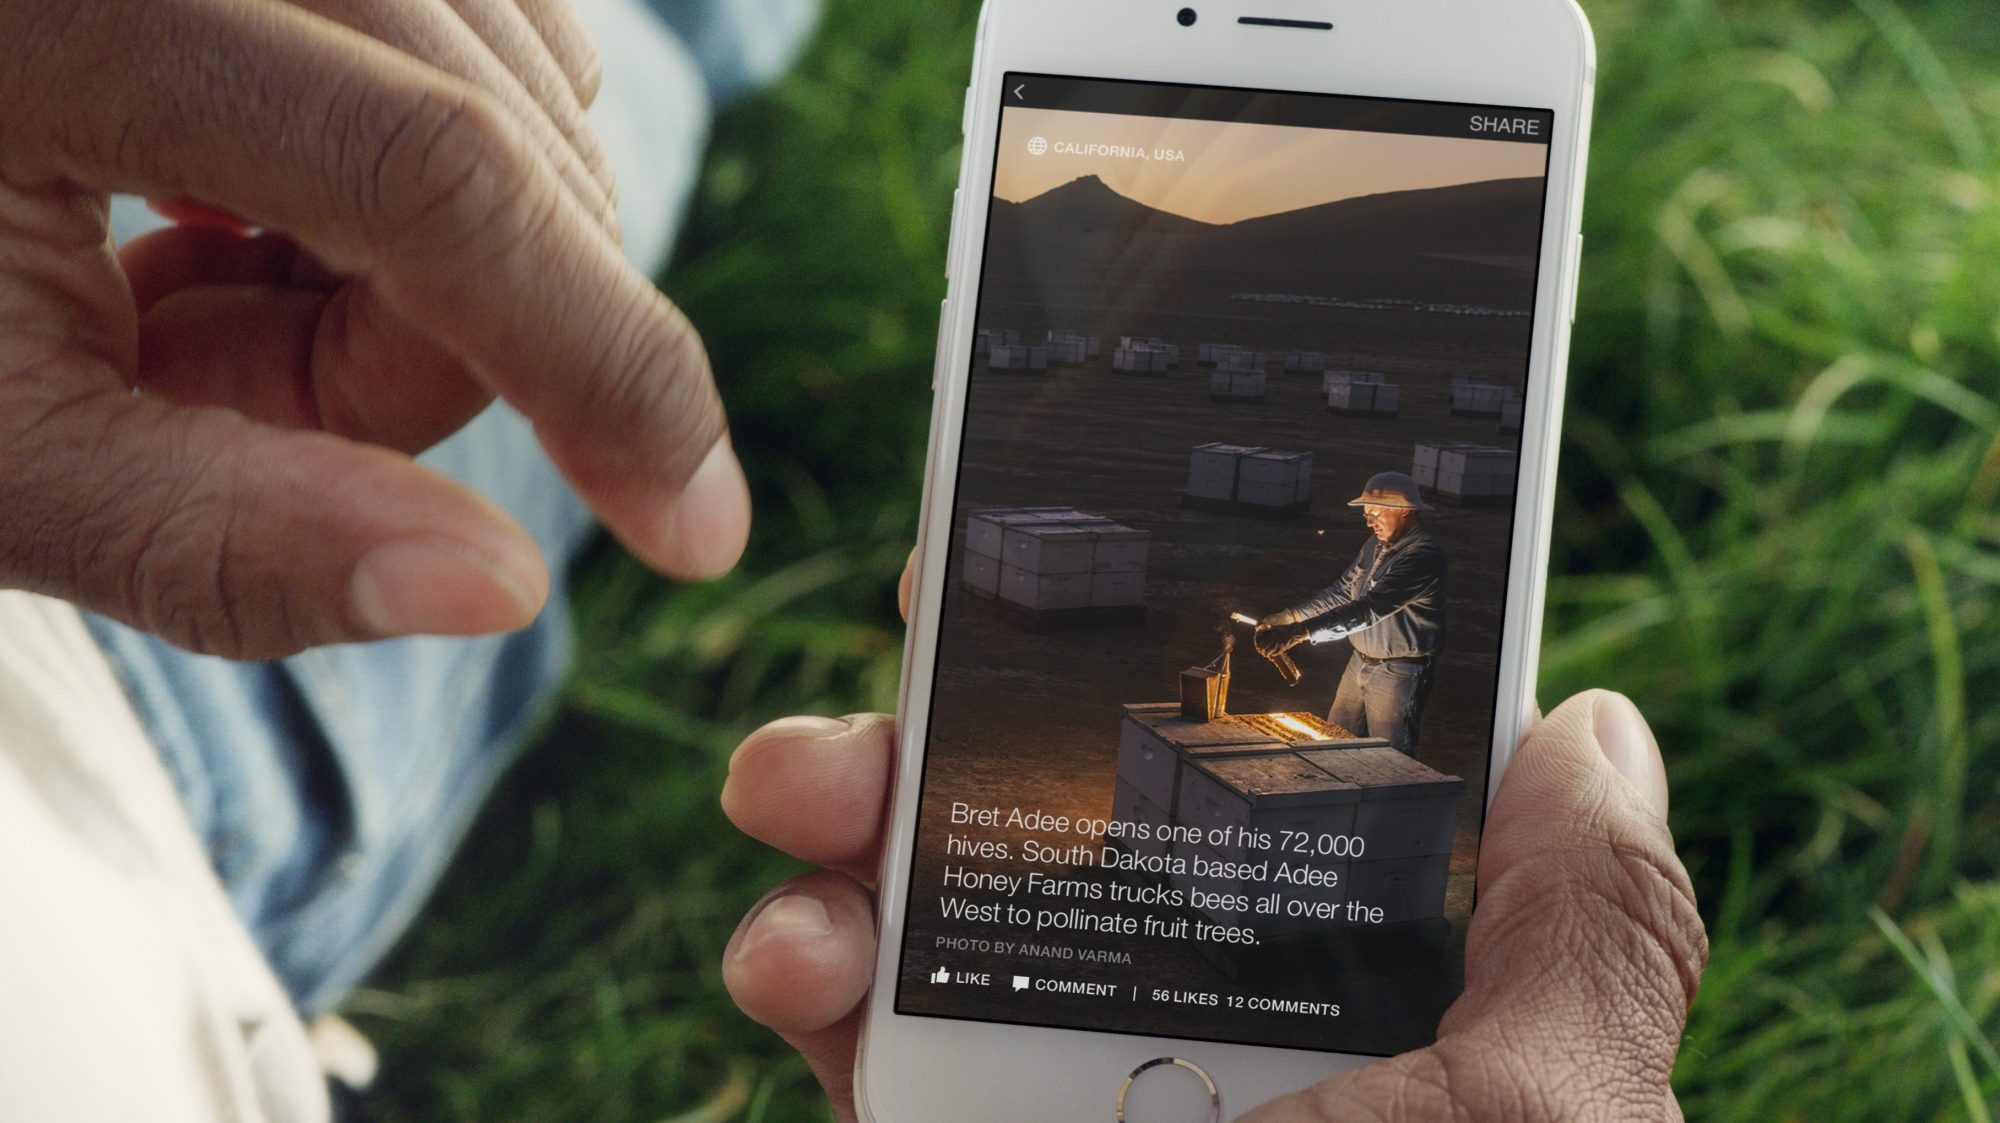 Facebook rolls out its 'Instant Articles' publisher platform